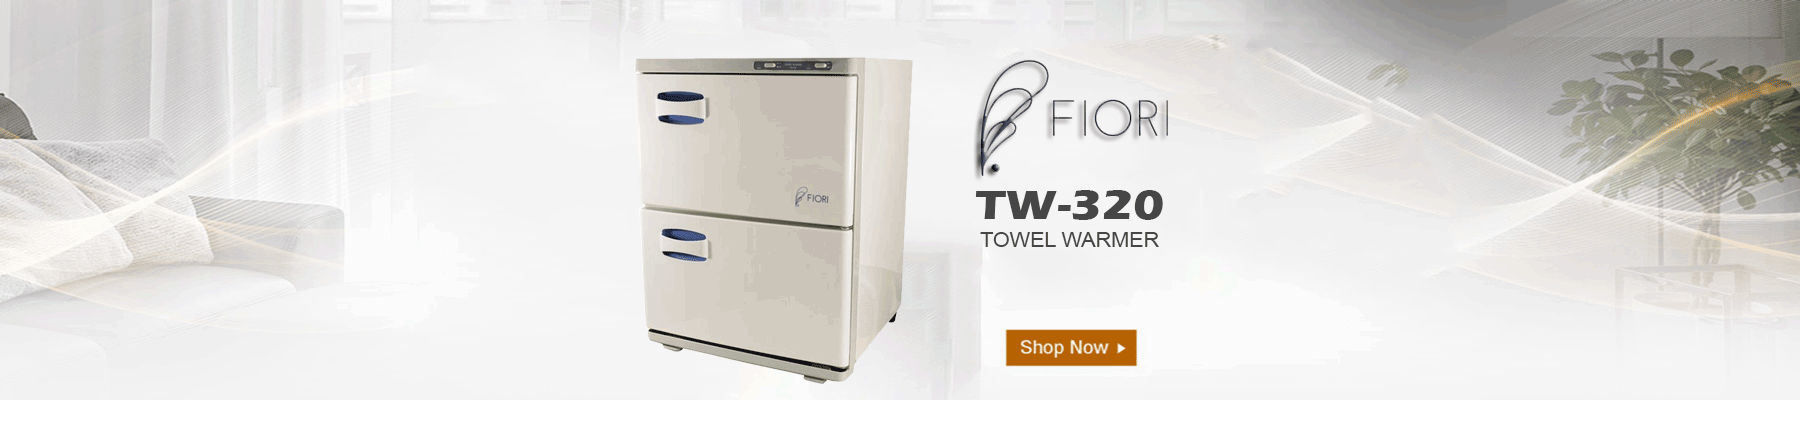 Fiori TW-320 towel warmer